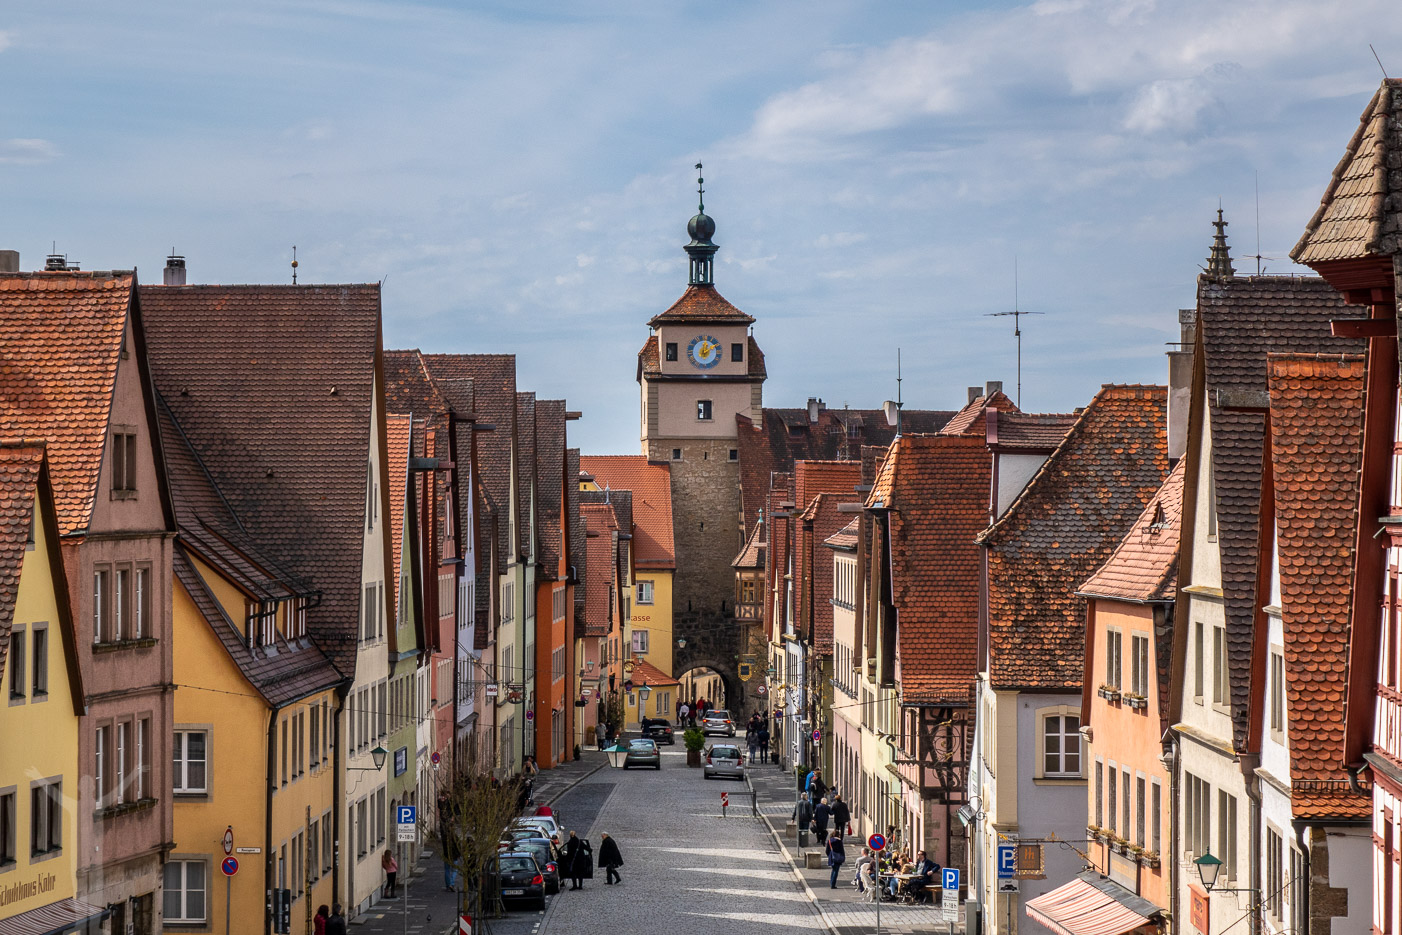 Gata i Rothenburg